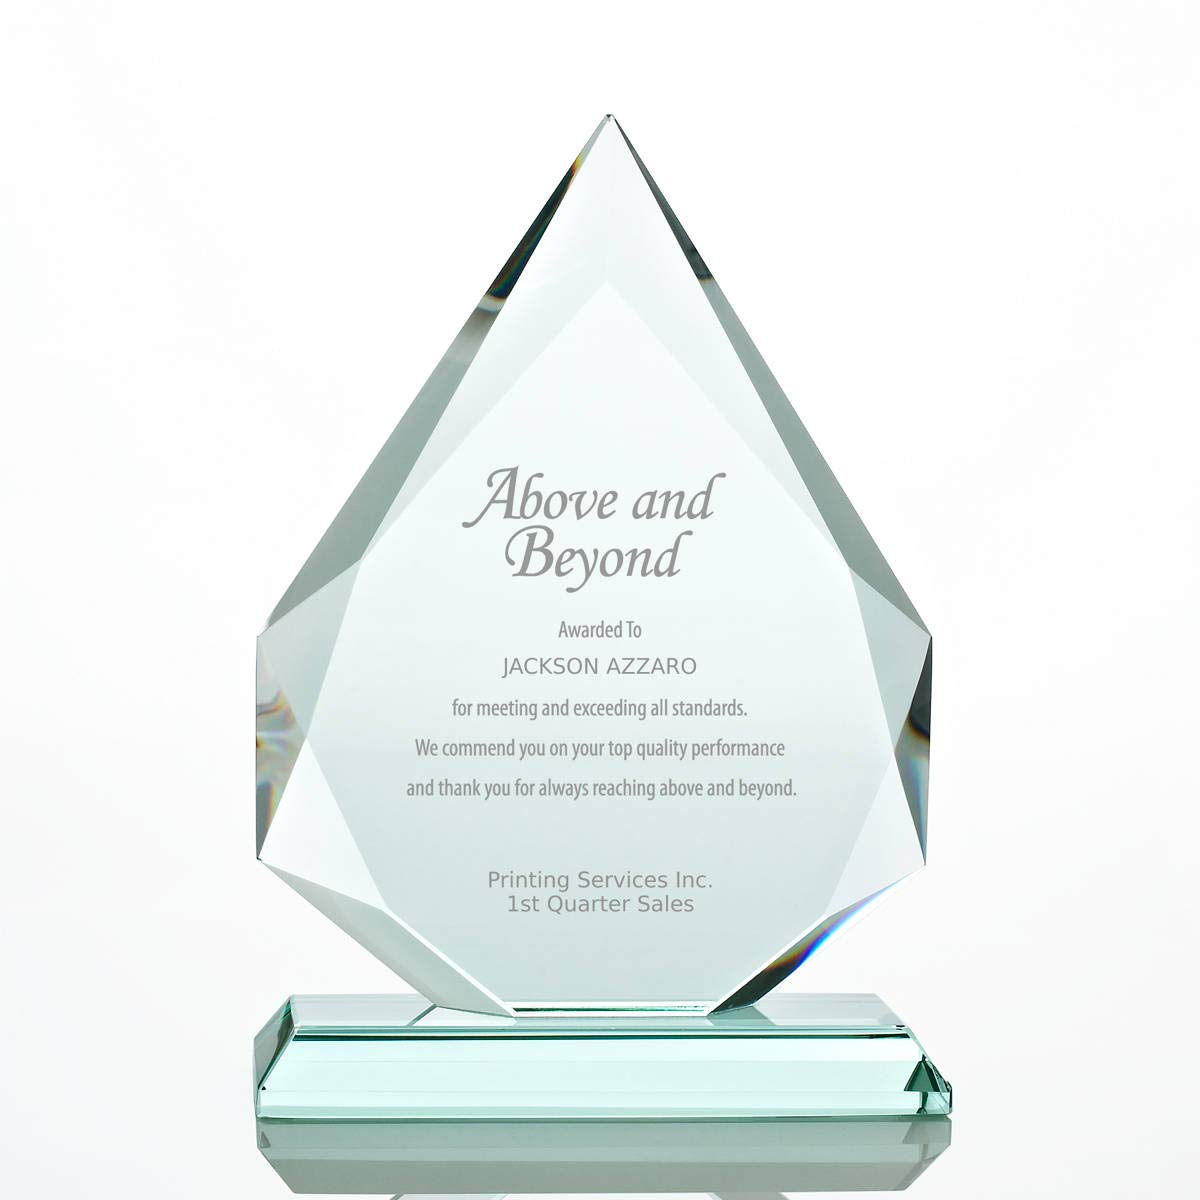 Baudville Engraved Trophy - Jade Glass - Award for Employees - Peak Shaped - Personalized Engraving Up to Three Lines and Pre-Written Verse Selection - Comes in Gift Box by Baudville